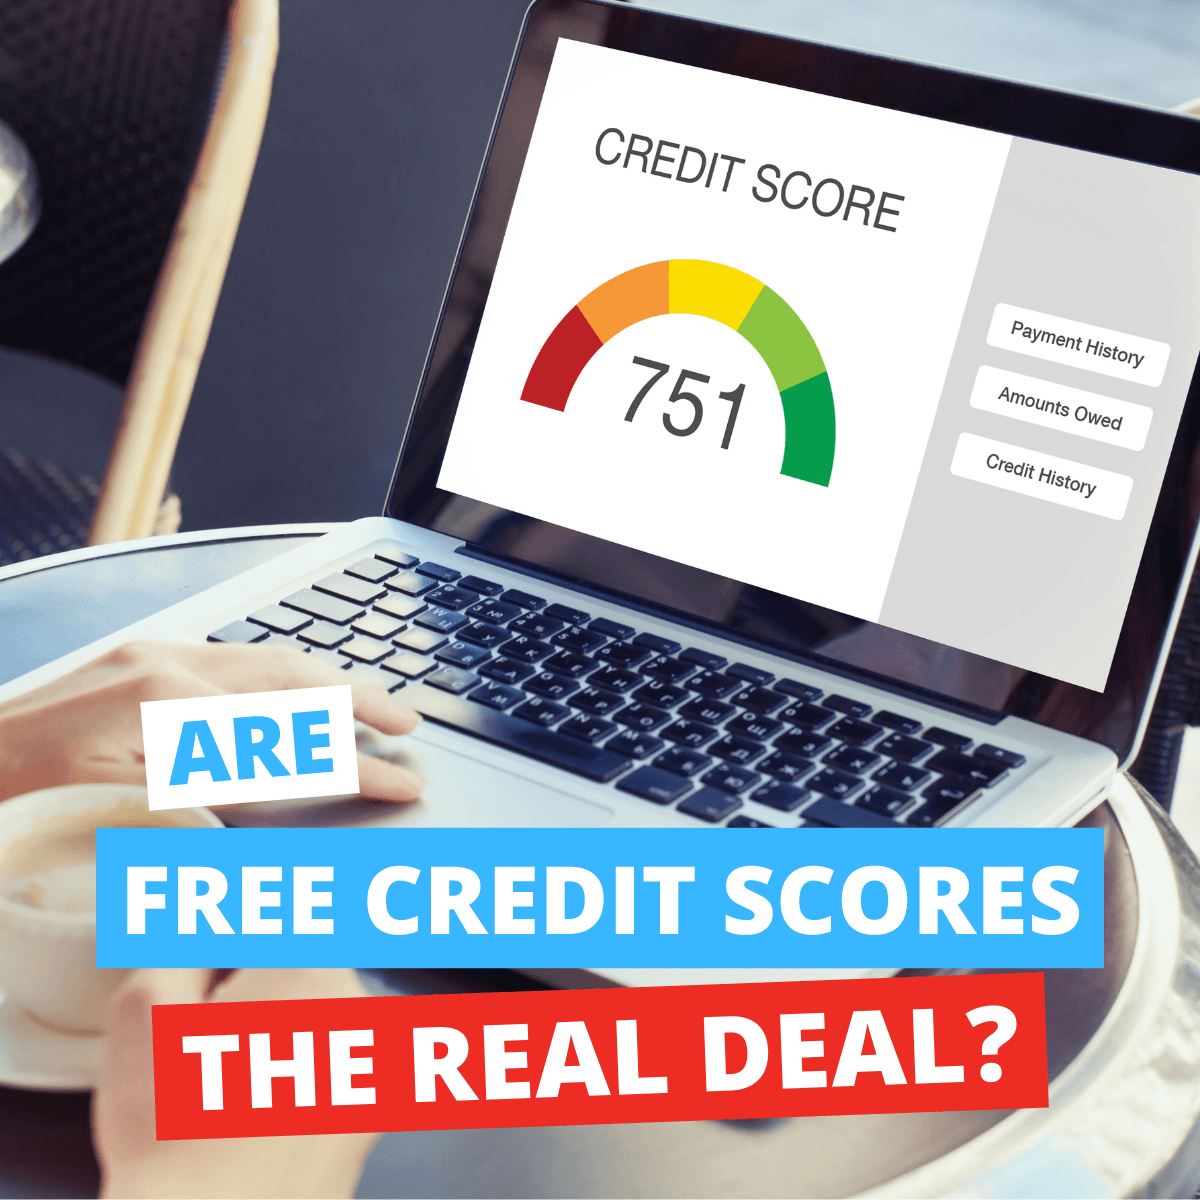 Are Free Credit Scores The Real Deal?